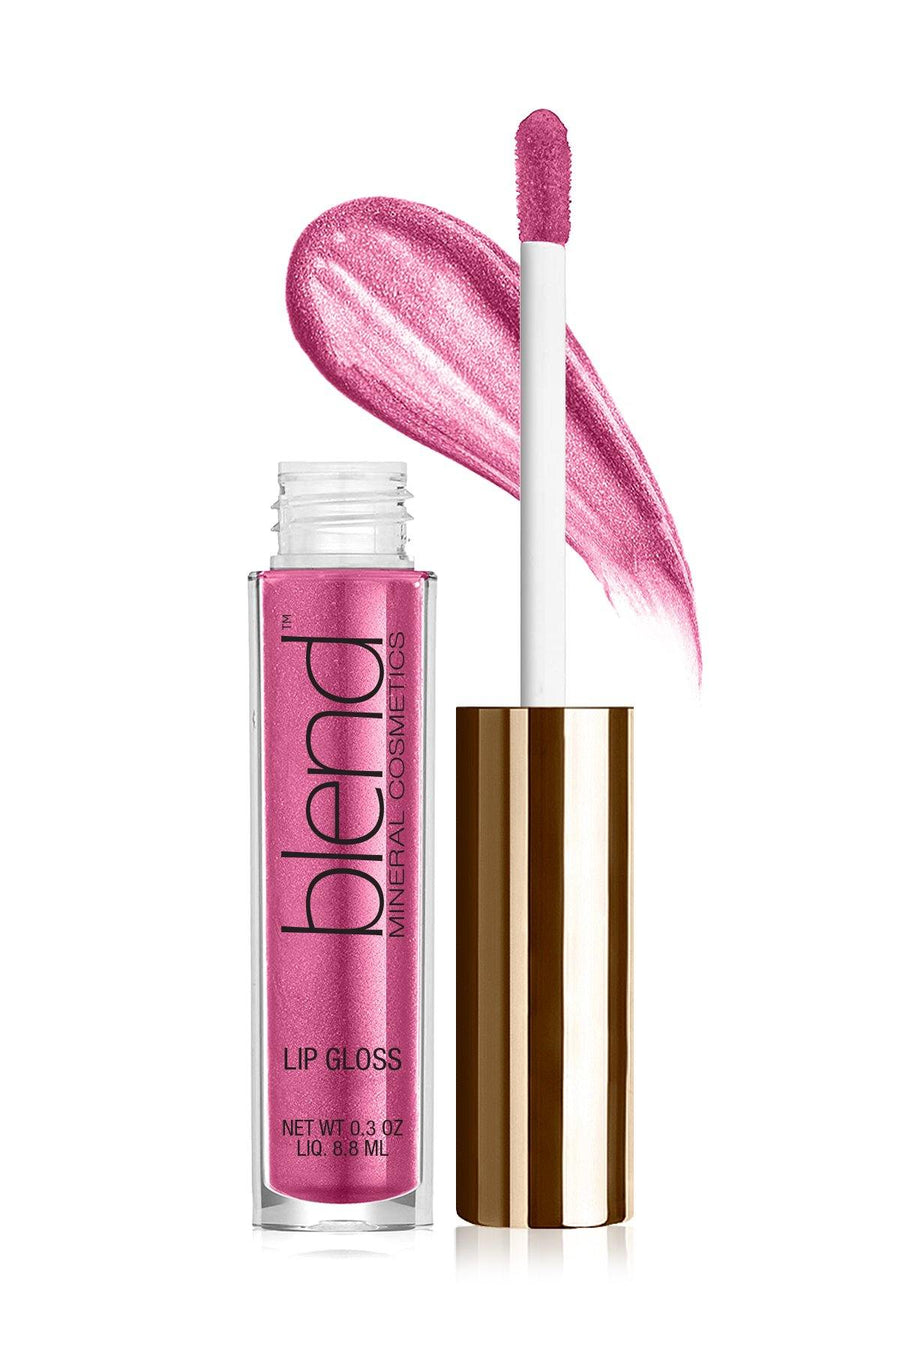 Lip Gloss #7 - Pink Pop - Blend Mineral Cosmetics